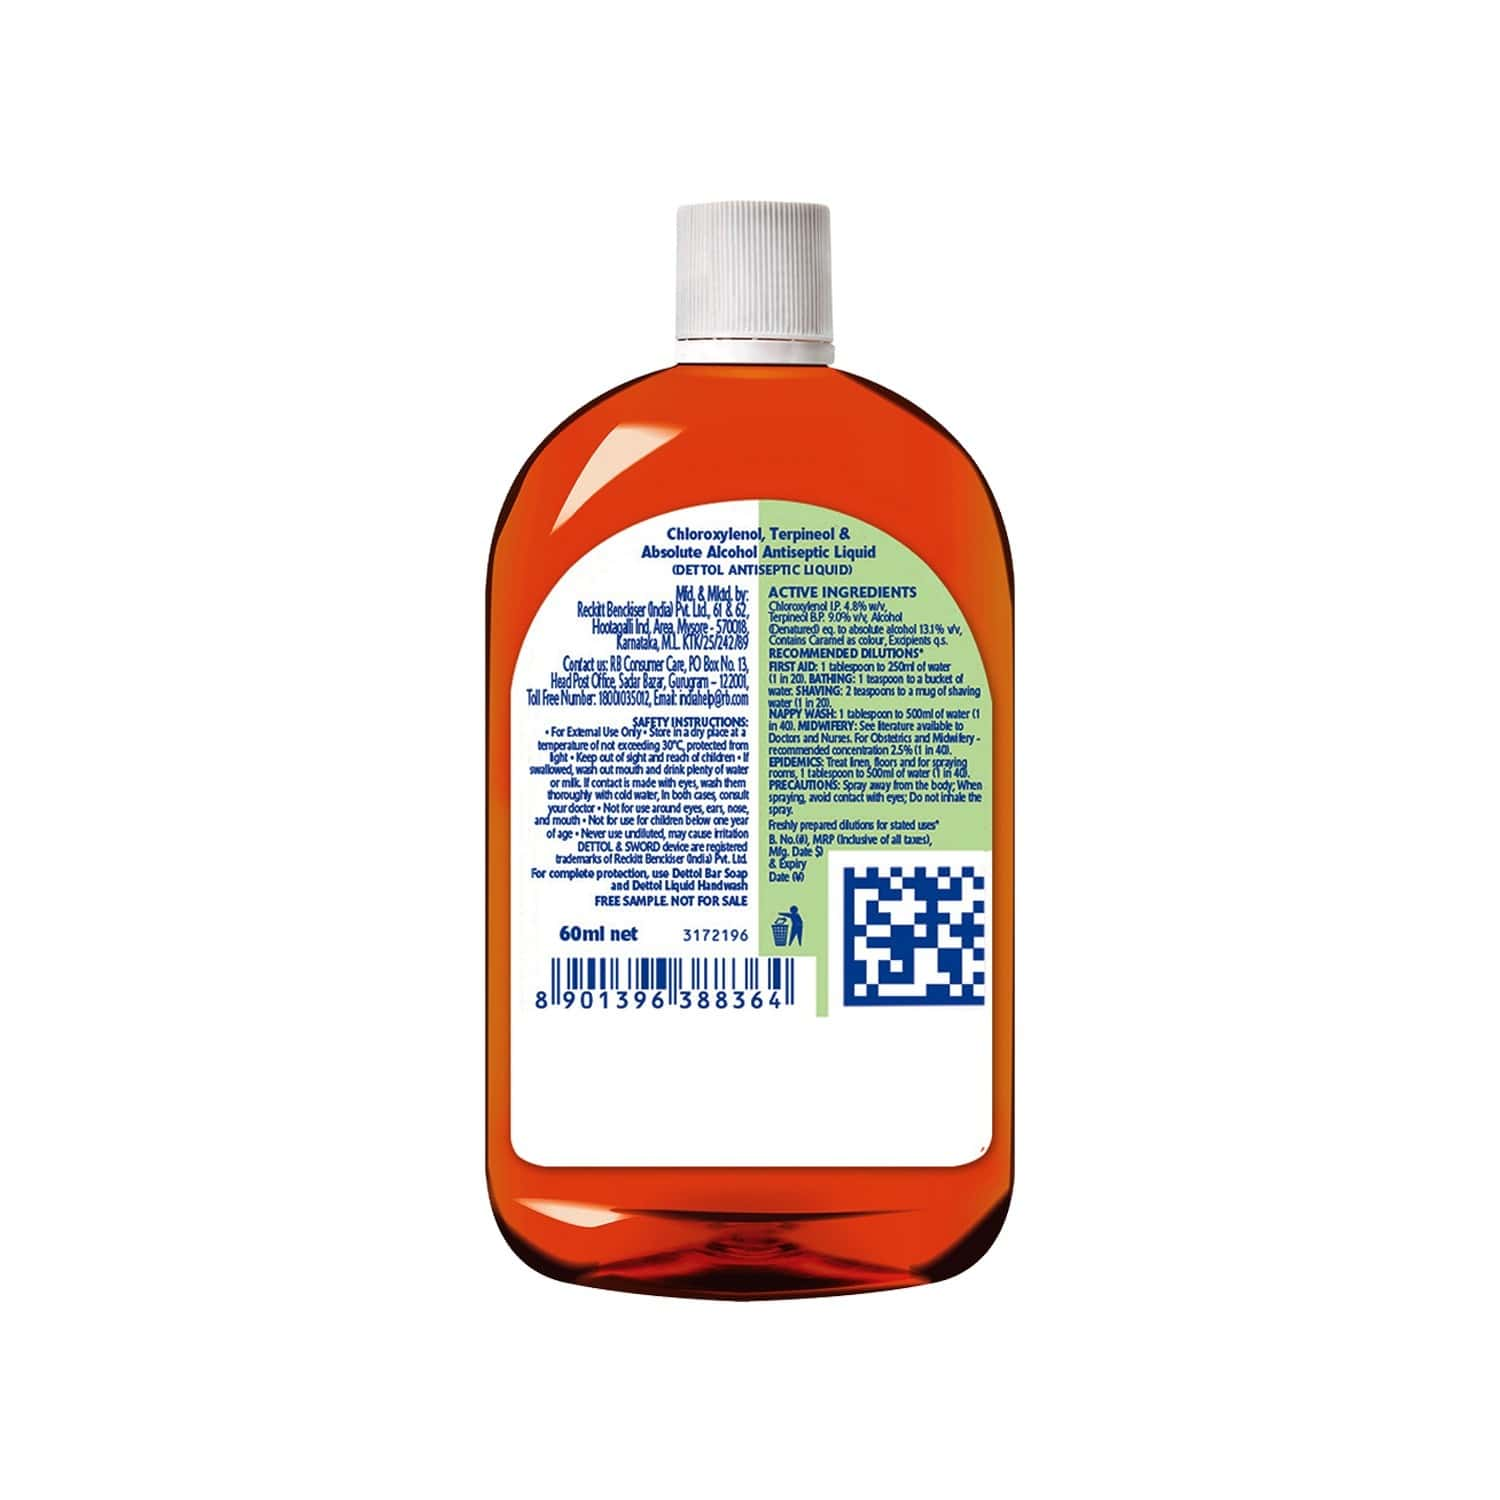 Moov Strong Diclofenac Pain Relief Gel 30g With Free Dettol Antiseptic Liquid - 60ml